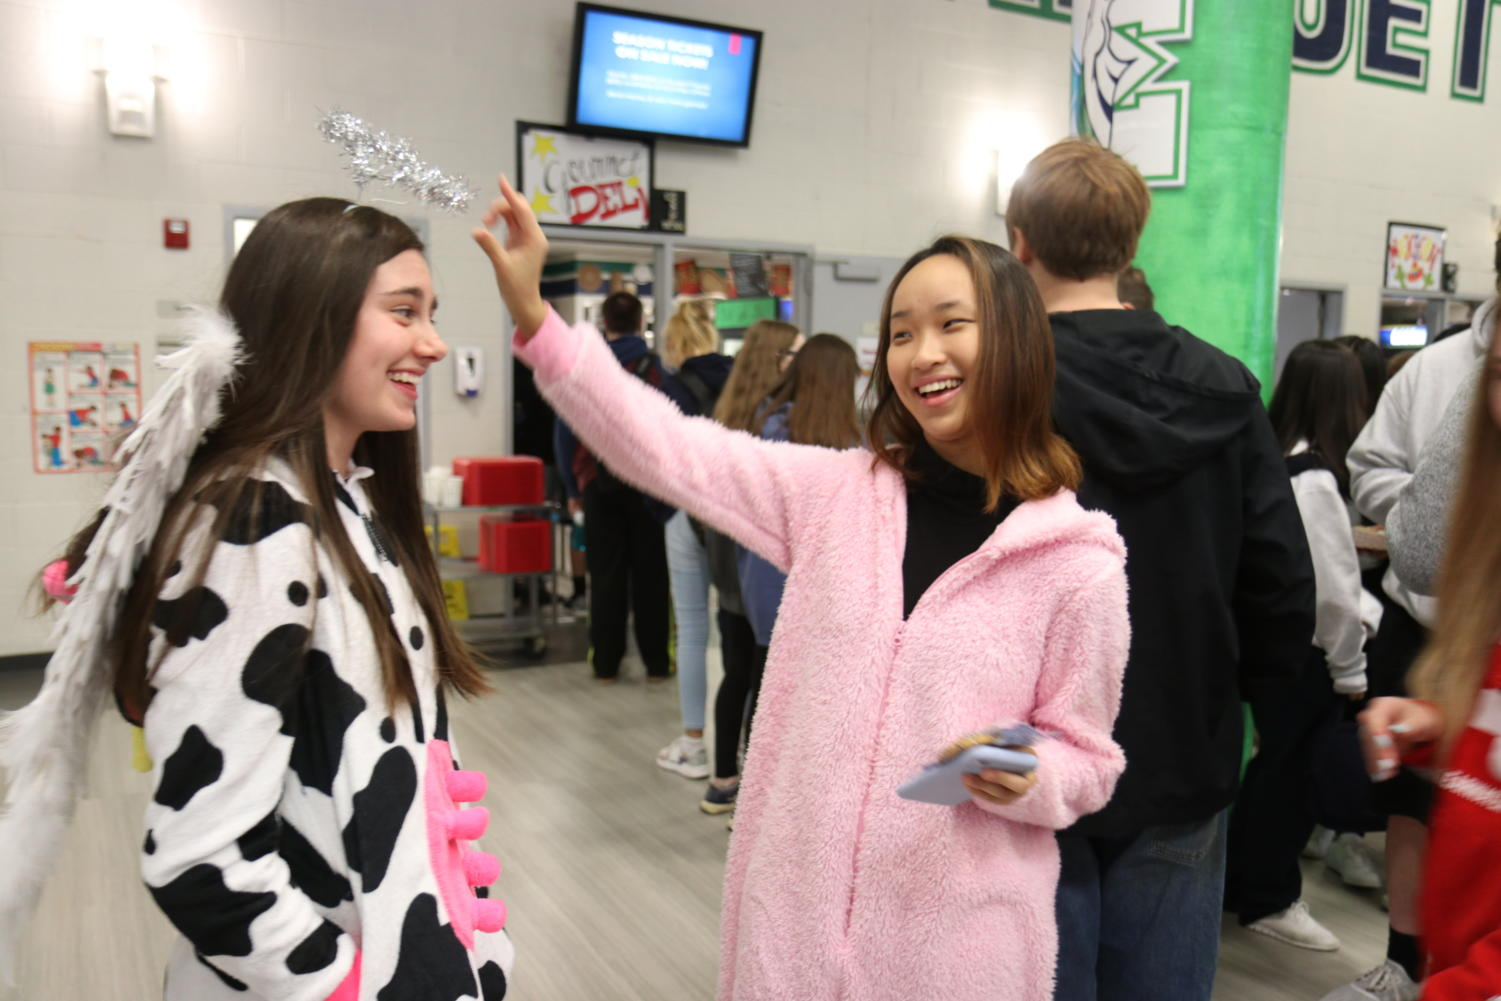 Seniors+Molly+Robinson+and+Nayoung+Yoo+are+dressed+as+a+%E2%80%98Holy+Cow.%E2%80%99+and+a+pig.++%22I+say+%E2%80%98holy+cow%E2%80%99+all+the+time+and+I+thought+it+would+be+funny%2C%E2%80%9D+Robinson+said.